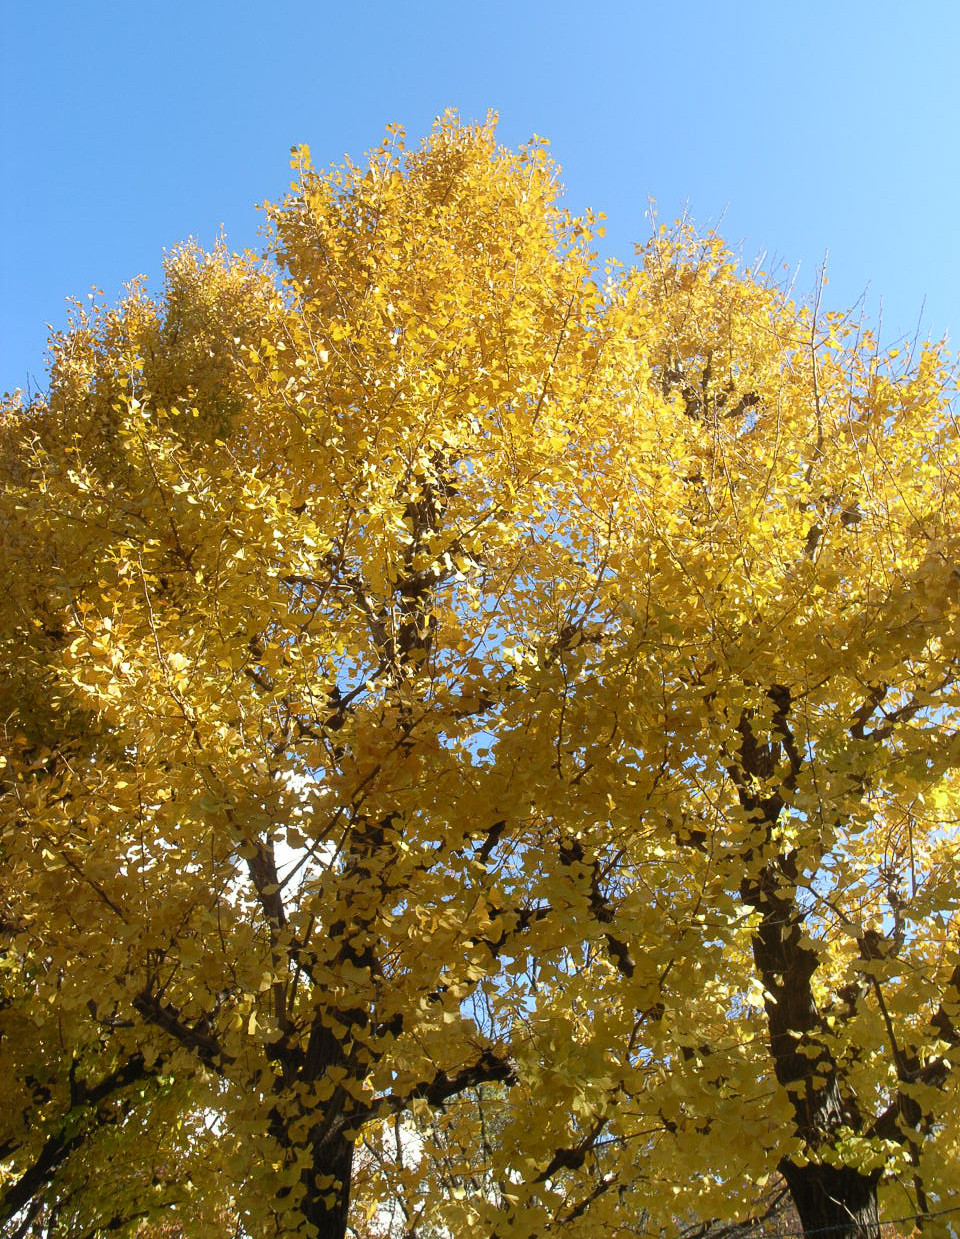 Komorebi - a Japanese word that roughly means 'sunlight filtering through the leaves of trees'